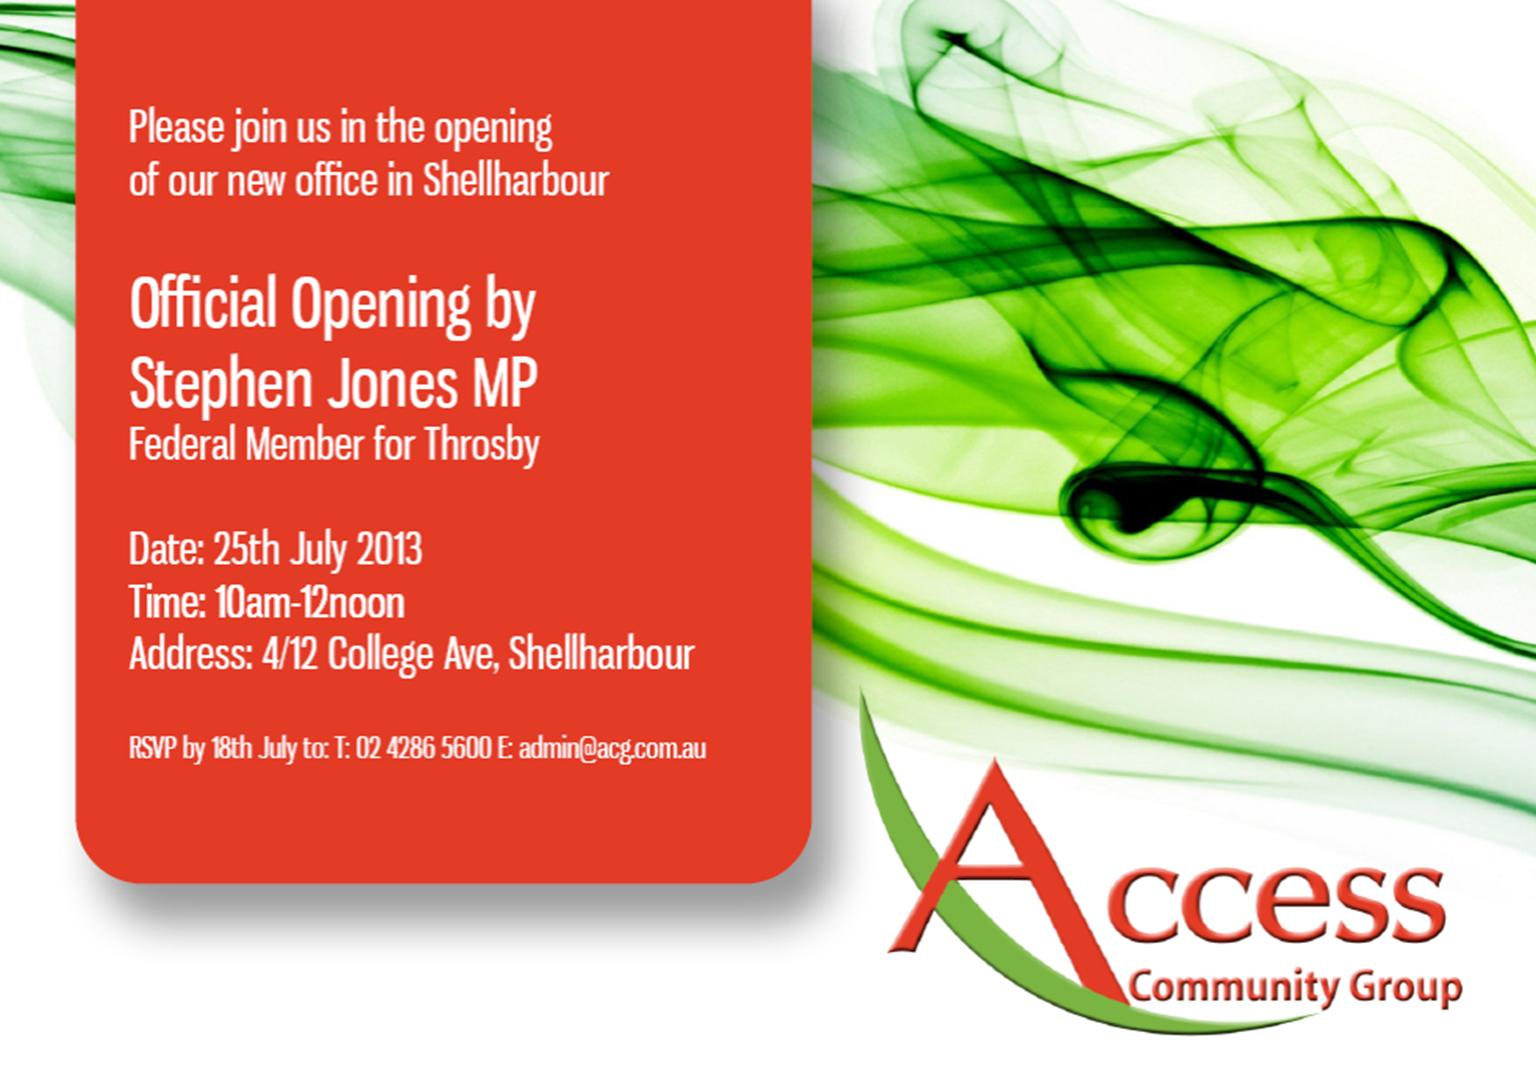 Access Community Group Shellharbour Office Opening invitation